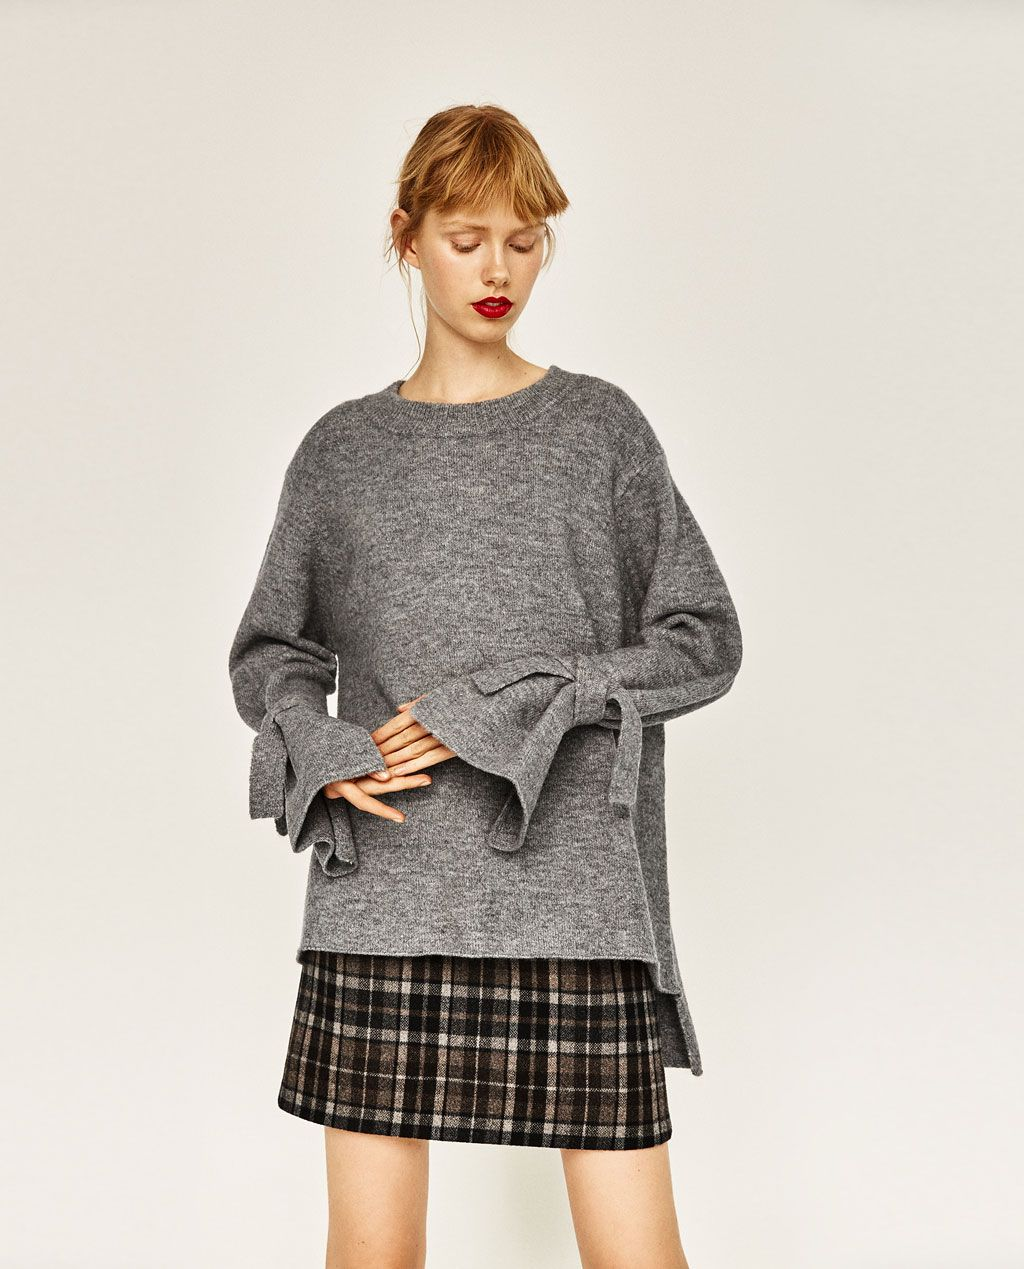 68c83f7117e0 Image 4 of SWEATER WITH TIE SLEEVES from Zara   My Style Inspiration ...